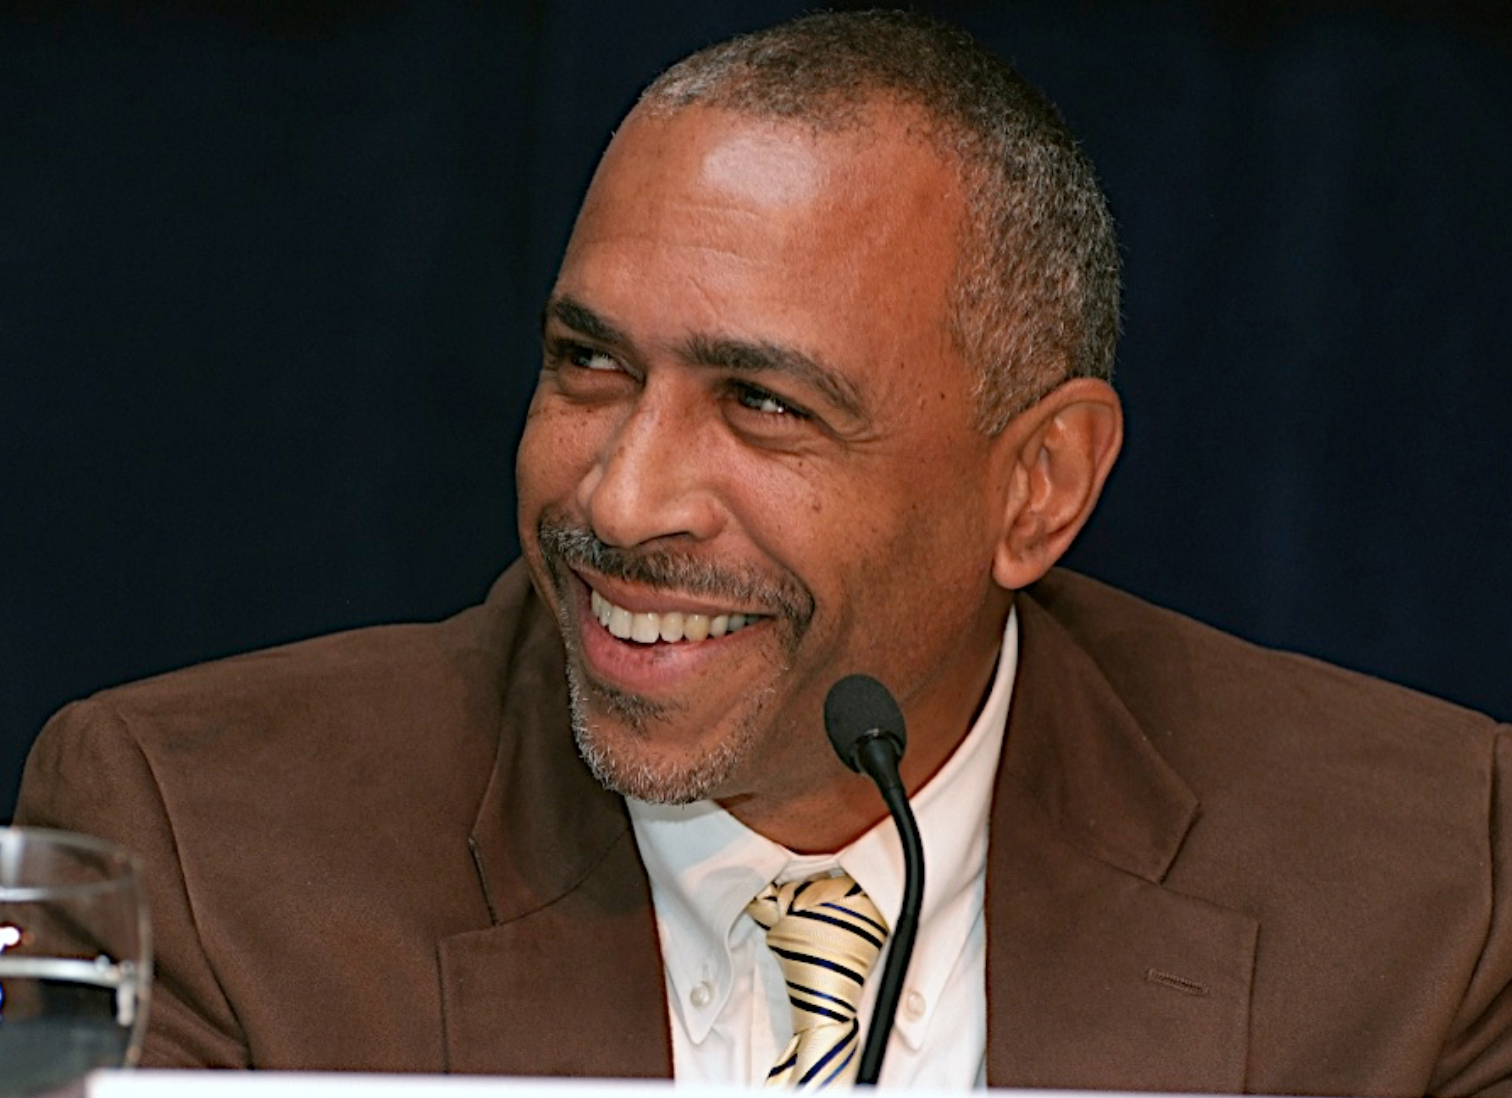 Pedro Noguera supports lowering academic and discipline standards for black and hispanic students in public schools. He's lecturing in Highland Park on Monday, April 17